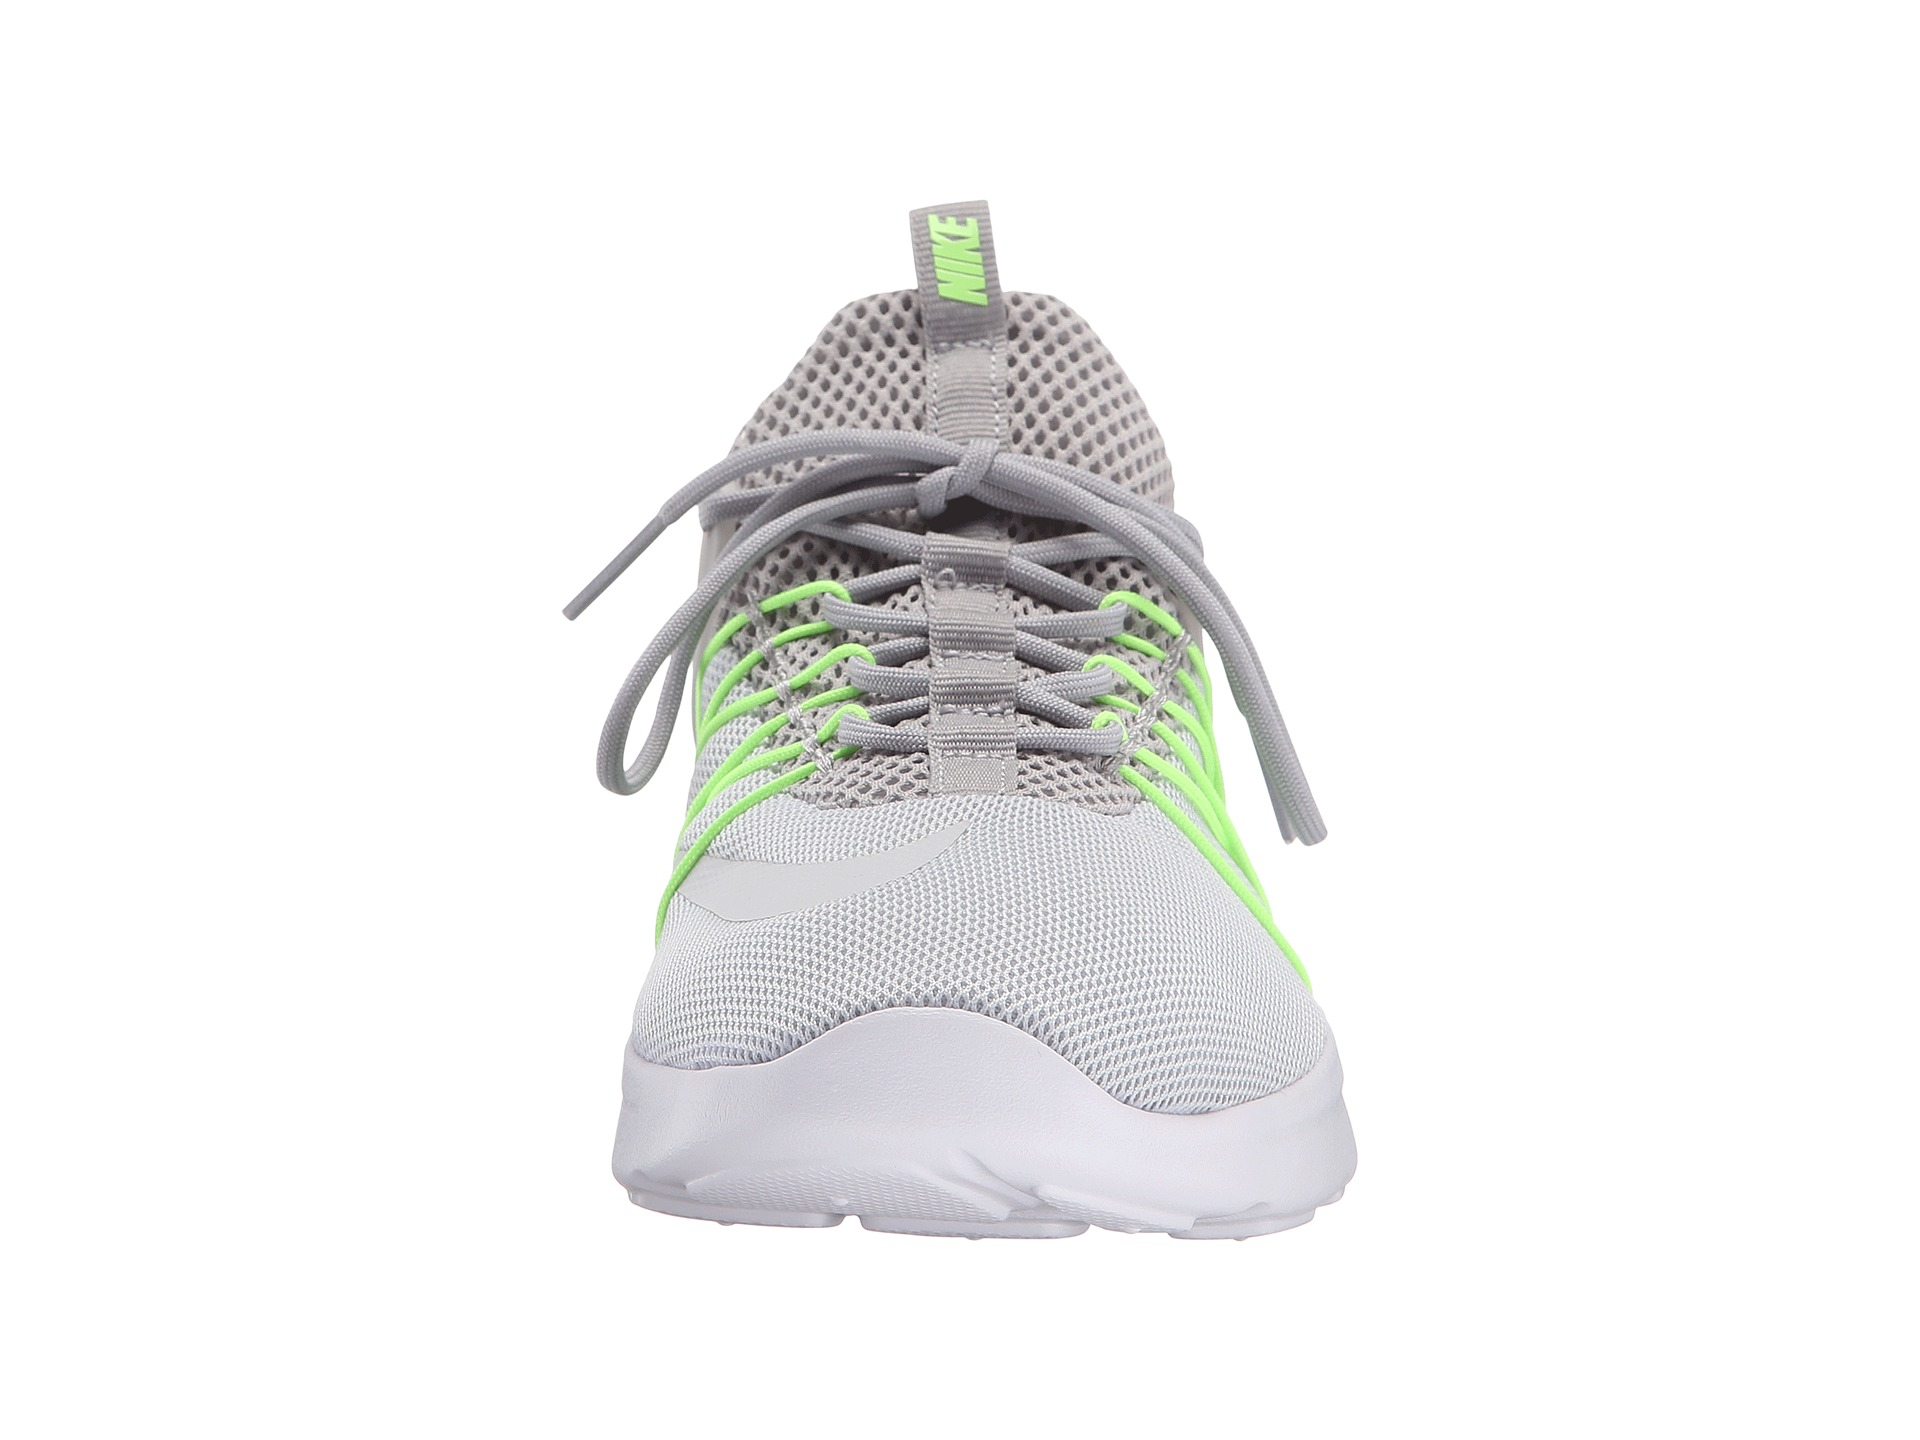 huge discount 4ae95 32af0 ... Nike Darwin Cool Grey Green Wolf Grey Running Shoes 819803 003  Gallery  . ...